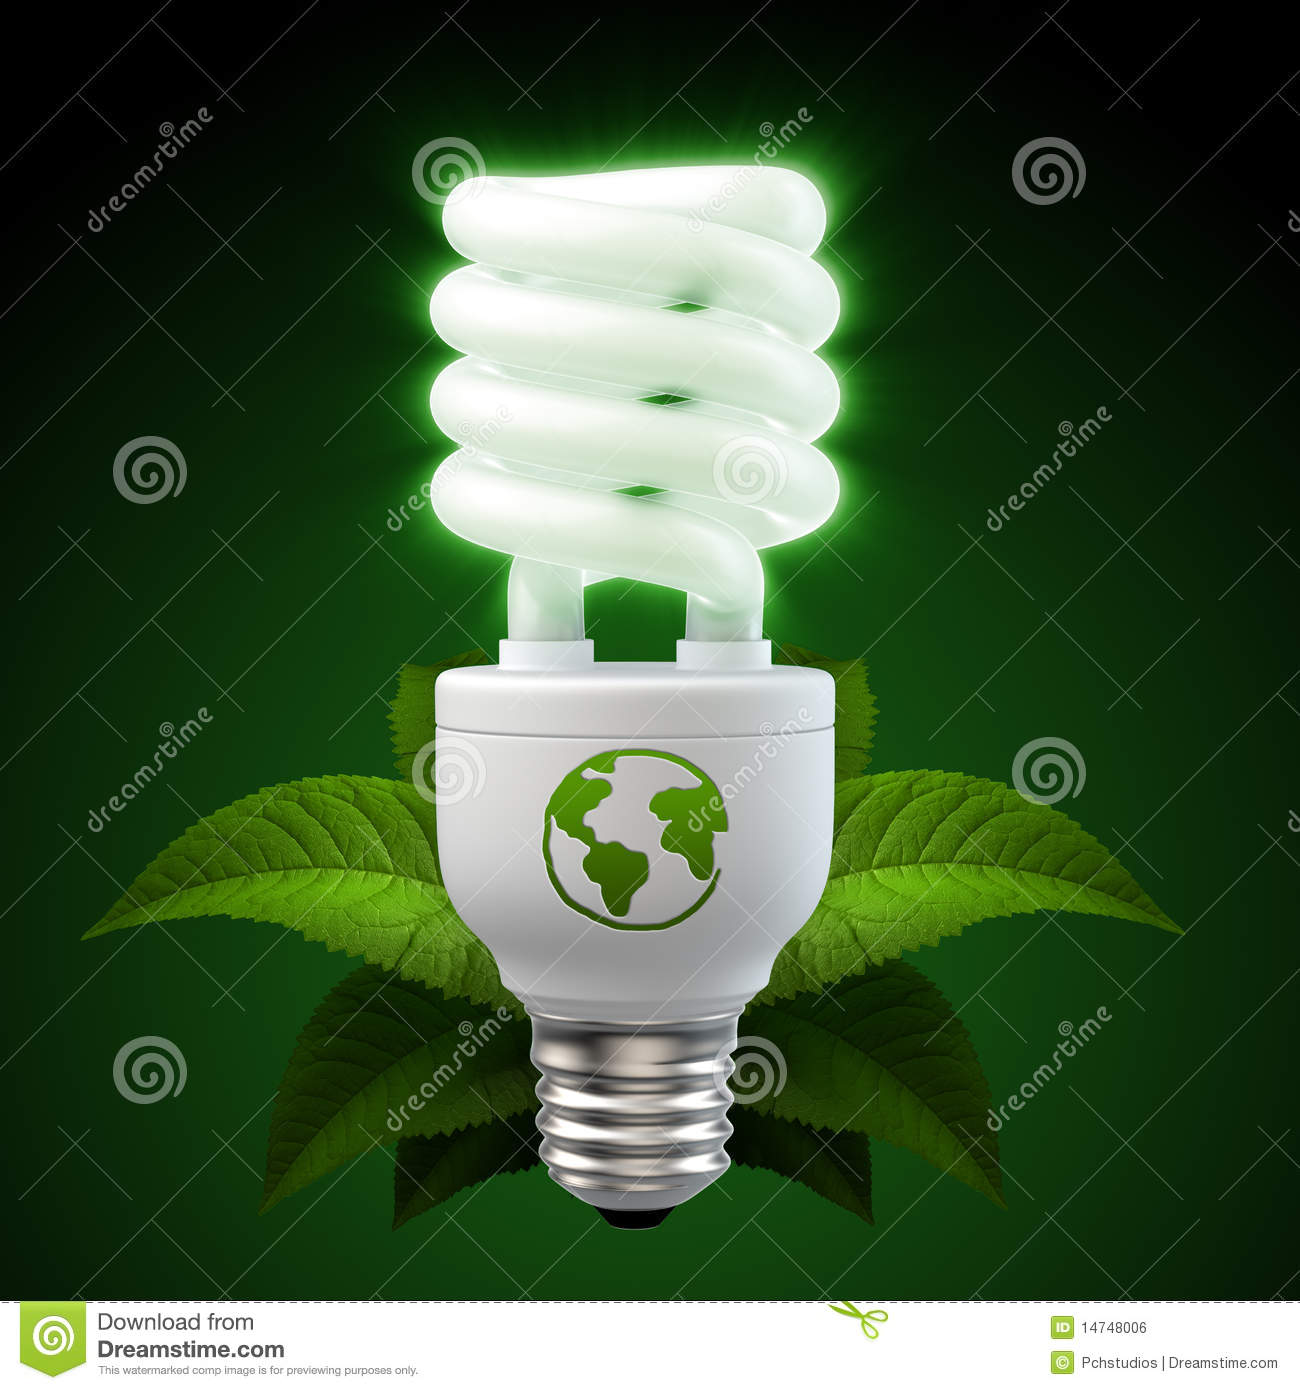 White Energy Saving Light Bulb With Leafs On Black Royalty Free Stock ...